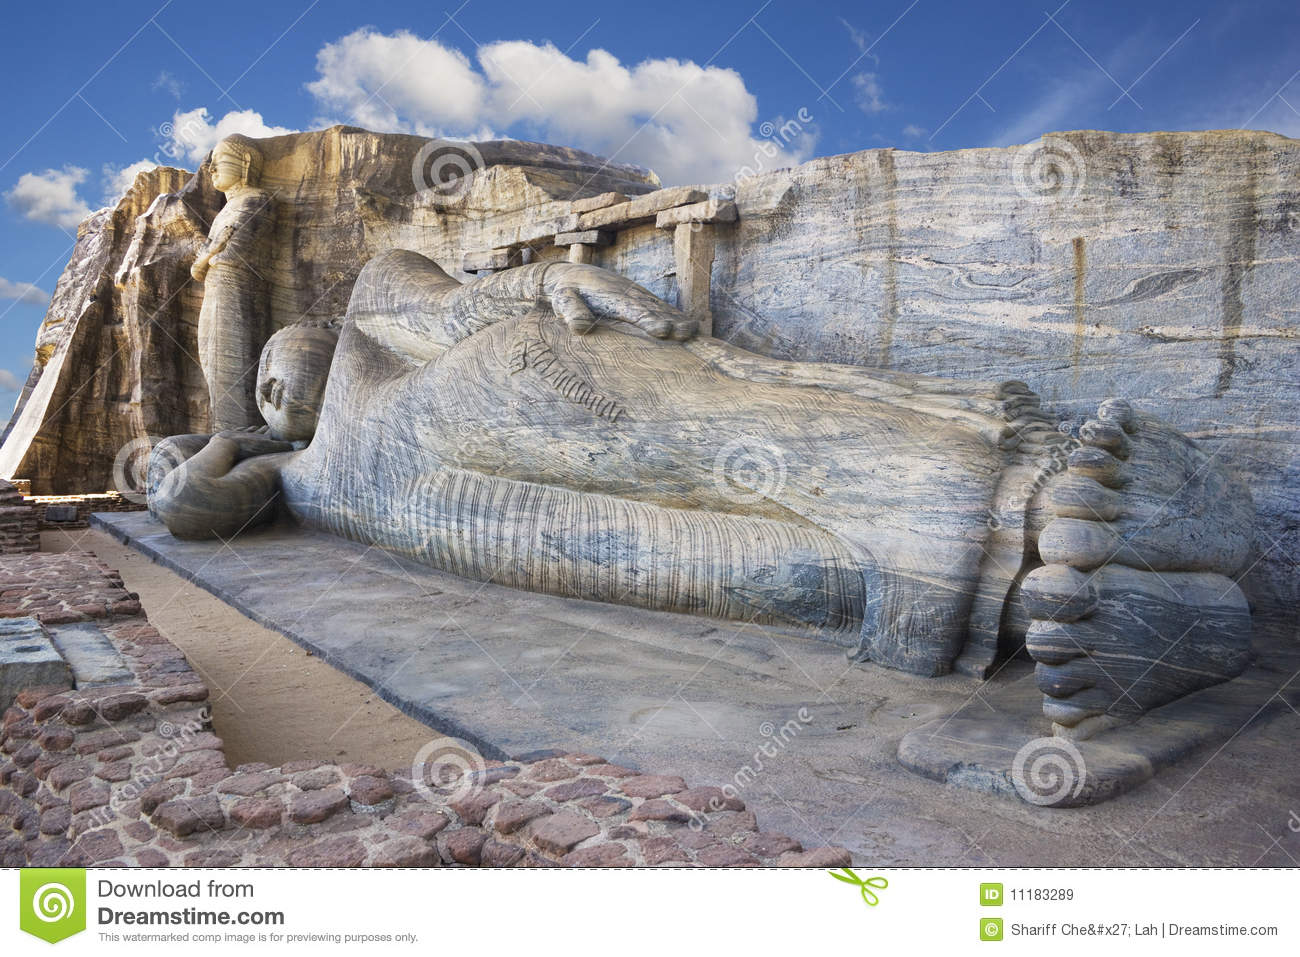 ... sri lanka the colossal buddha images masterpieces of sri lankan